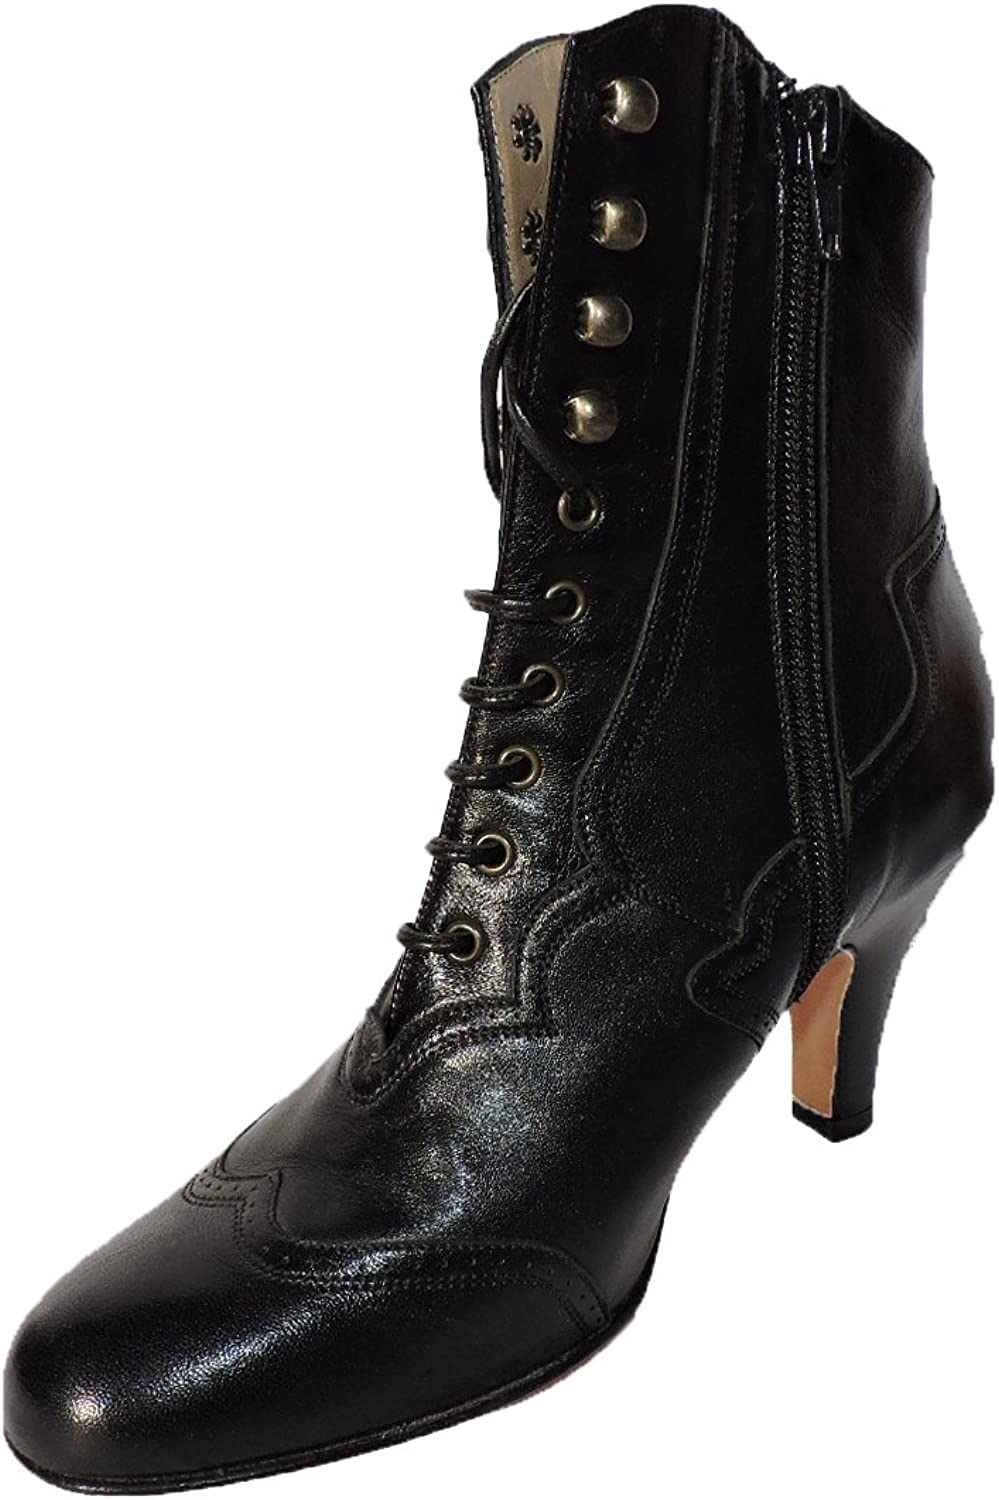 Anyi Lu Briana Womens Black 3  Heel Nappa Leather Snkle Boots, Lace up Booties Size 35 EU, 5 US